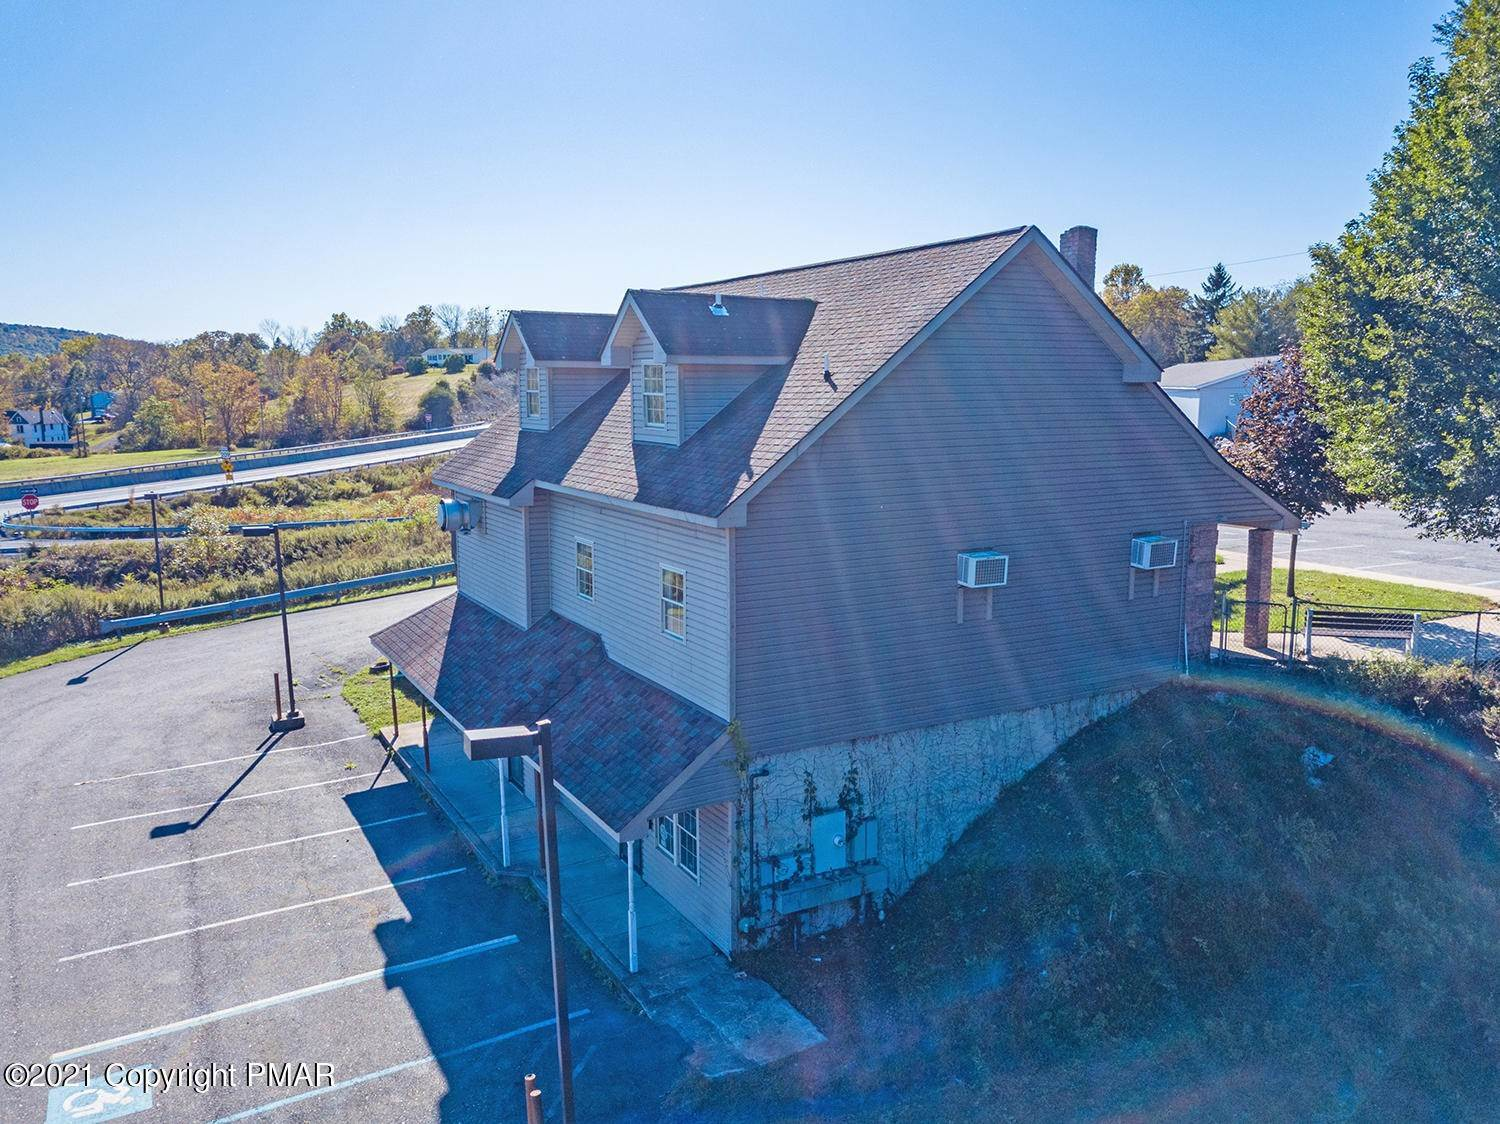 16. Commercial for Sale at 6568 Route 209 Stroudsburg, Pennsylvania 18360 United States